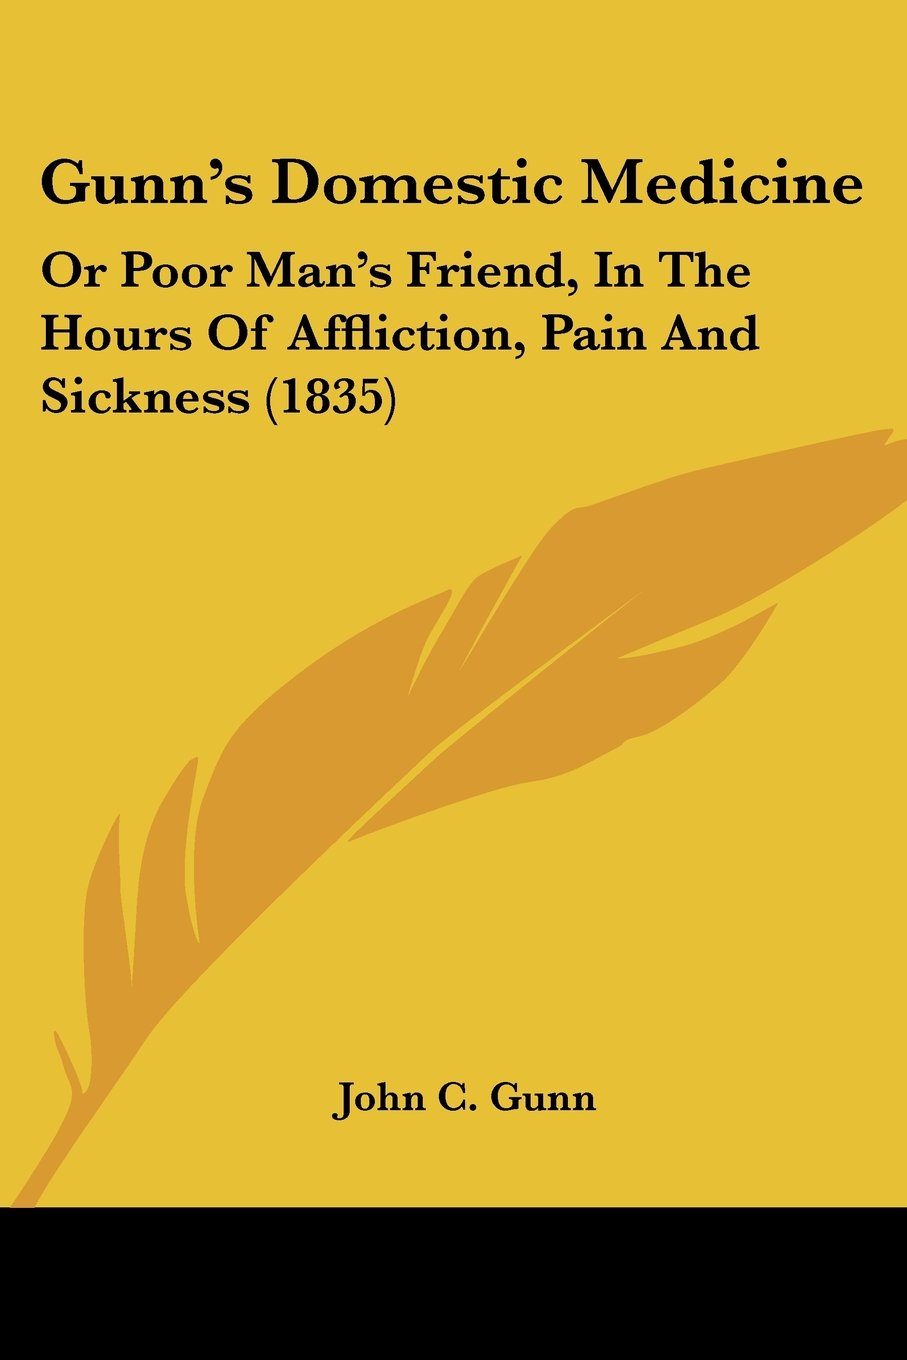 Download Gunn's Domestic Medicine: Or Poor Man's Friend, In The Hours Of Affliction, Pain And Sickness (1835) ebook